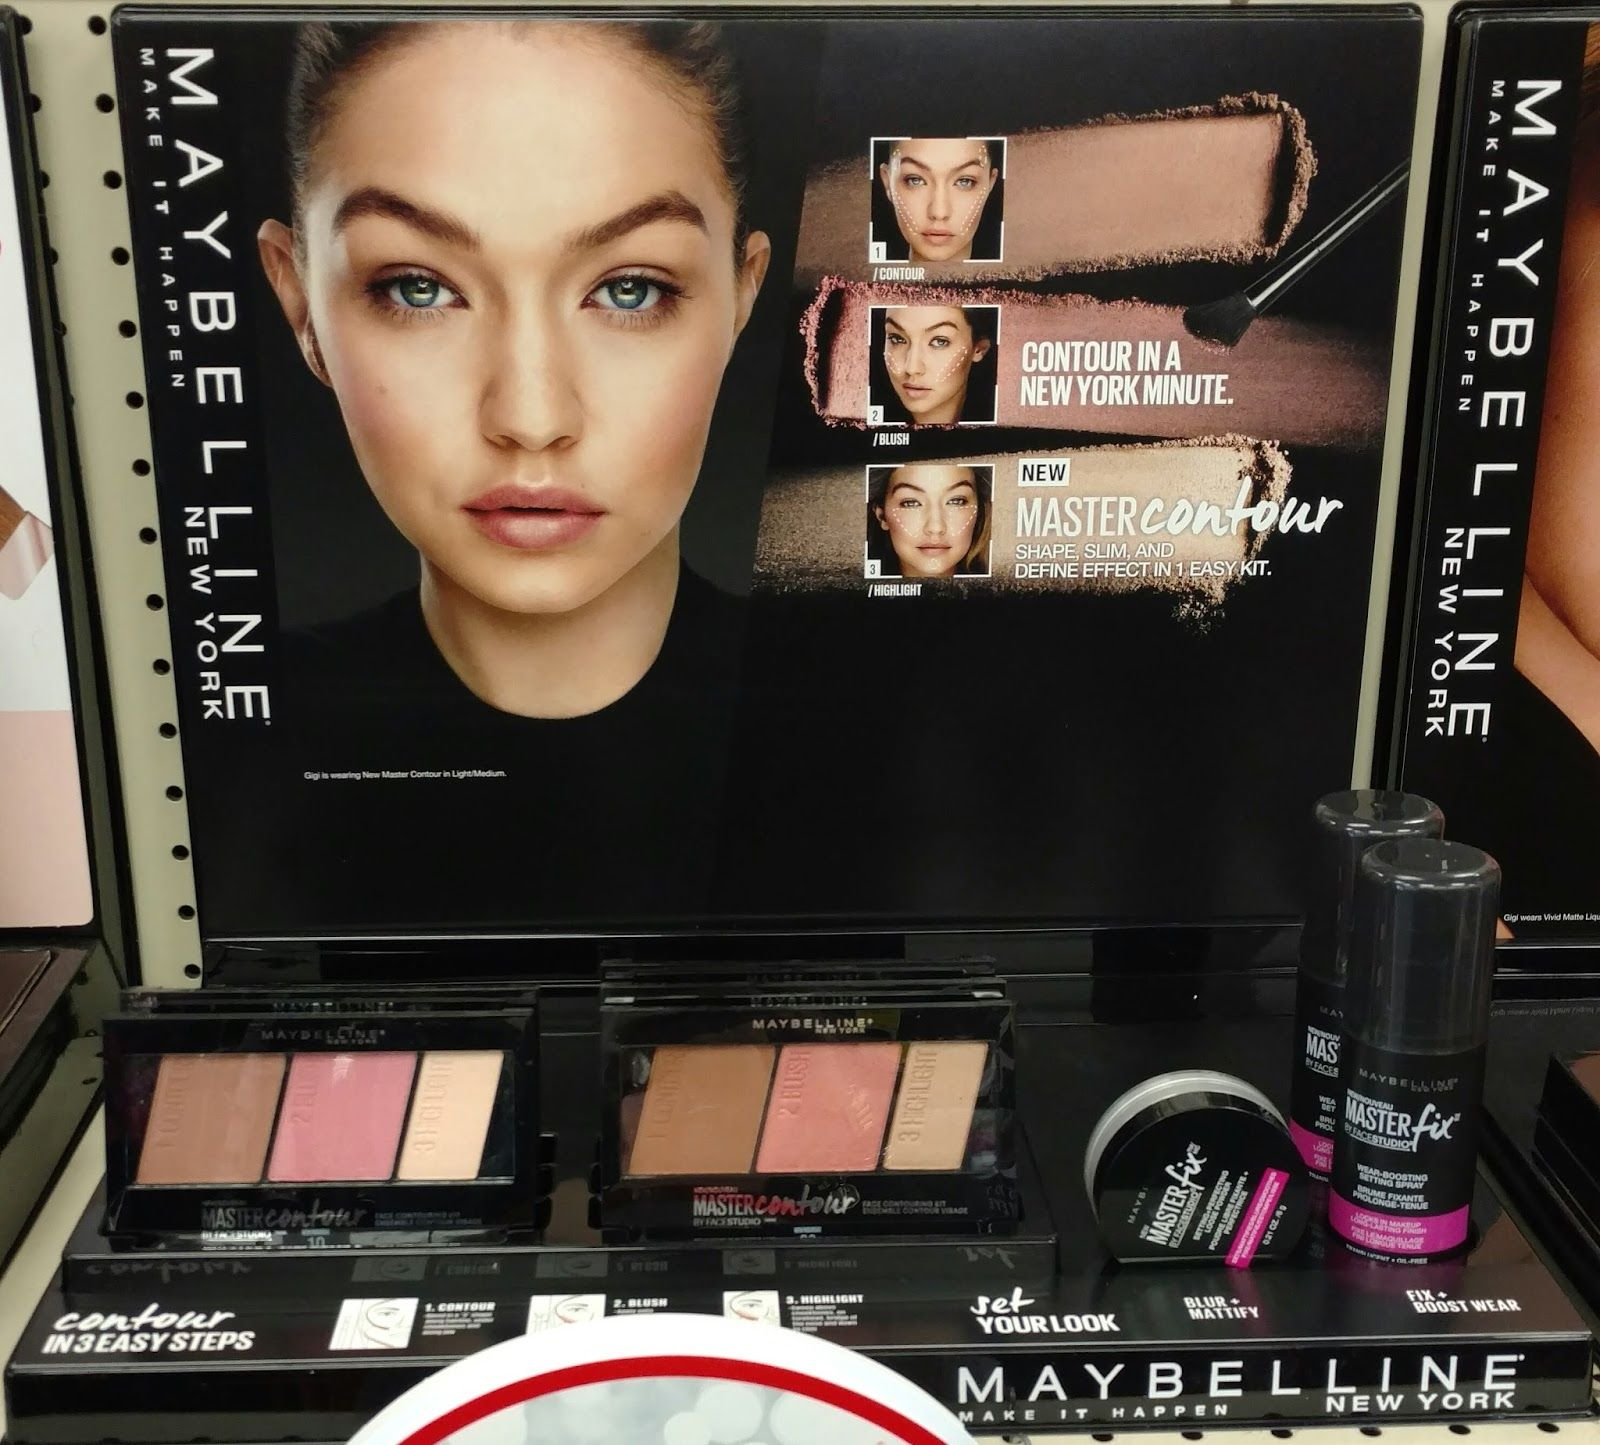 maybelline master contour | New displays | Pinterest | Maybelline ...